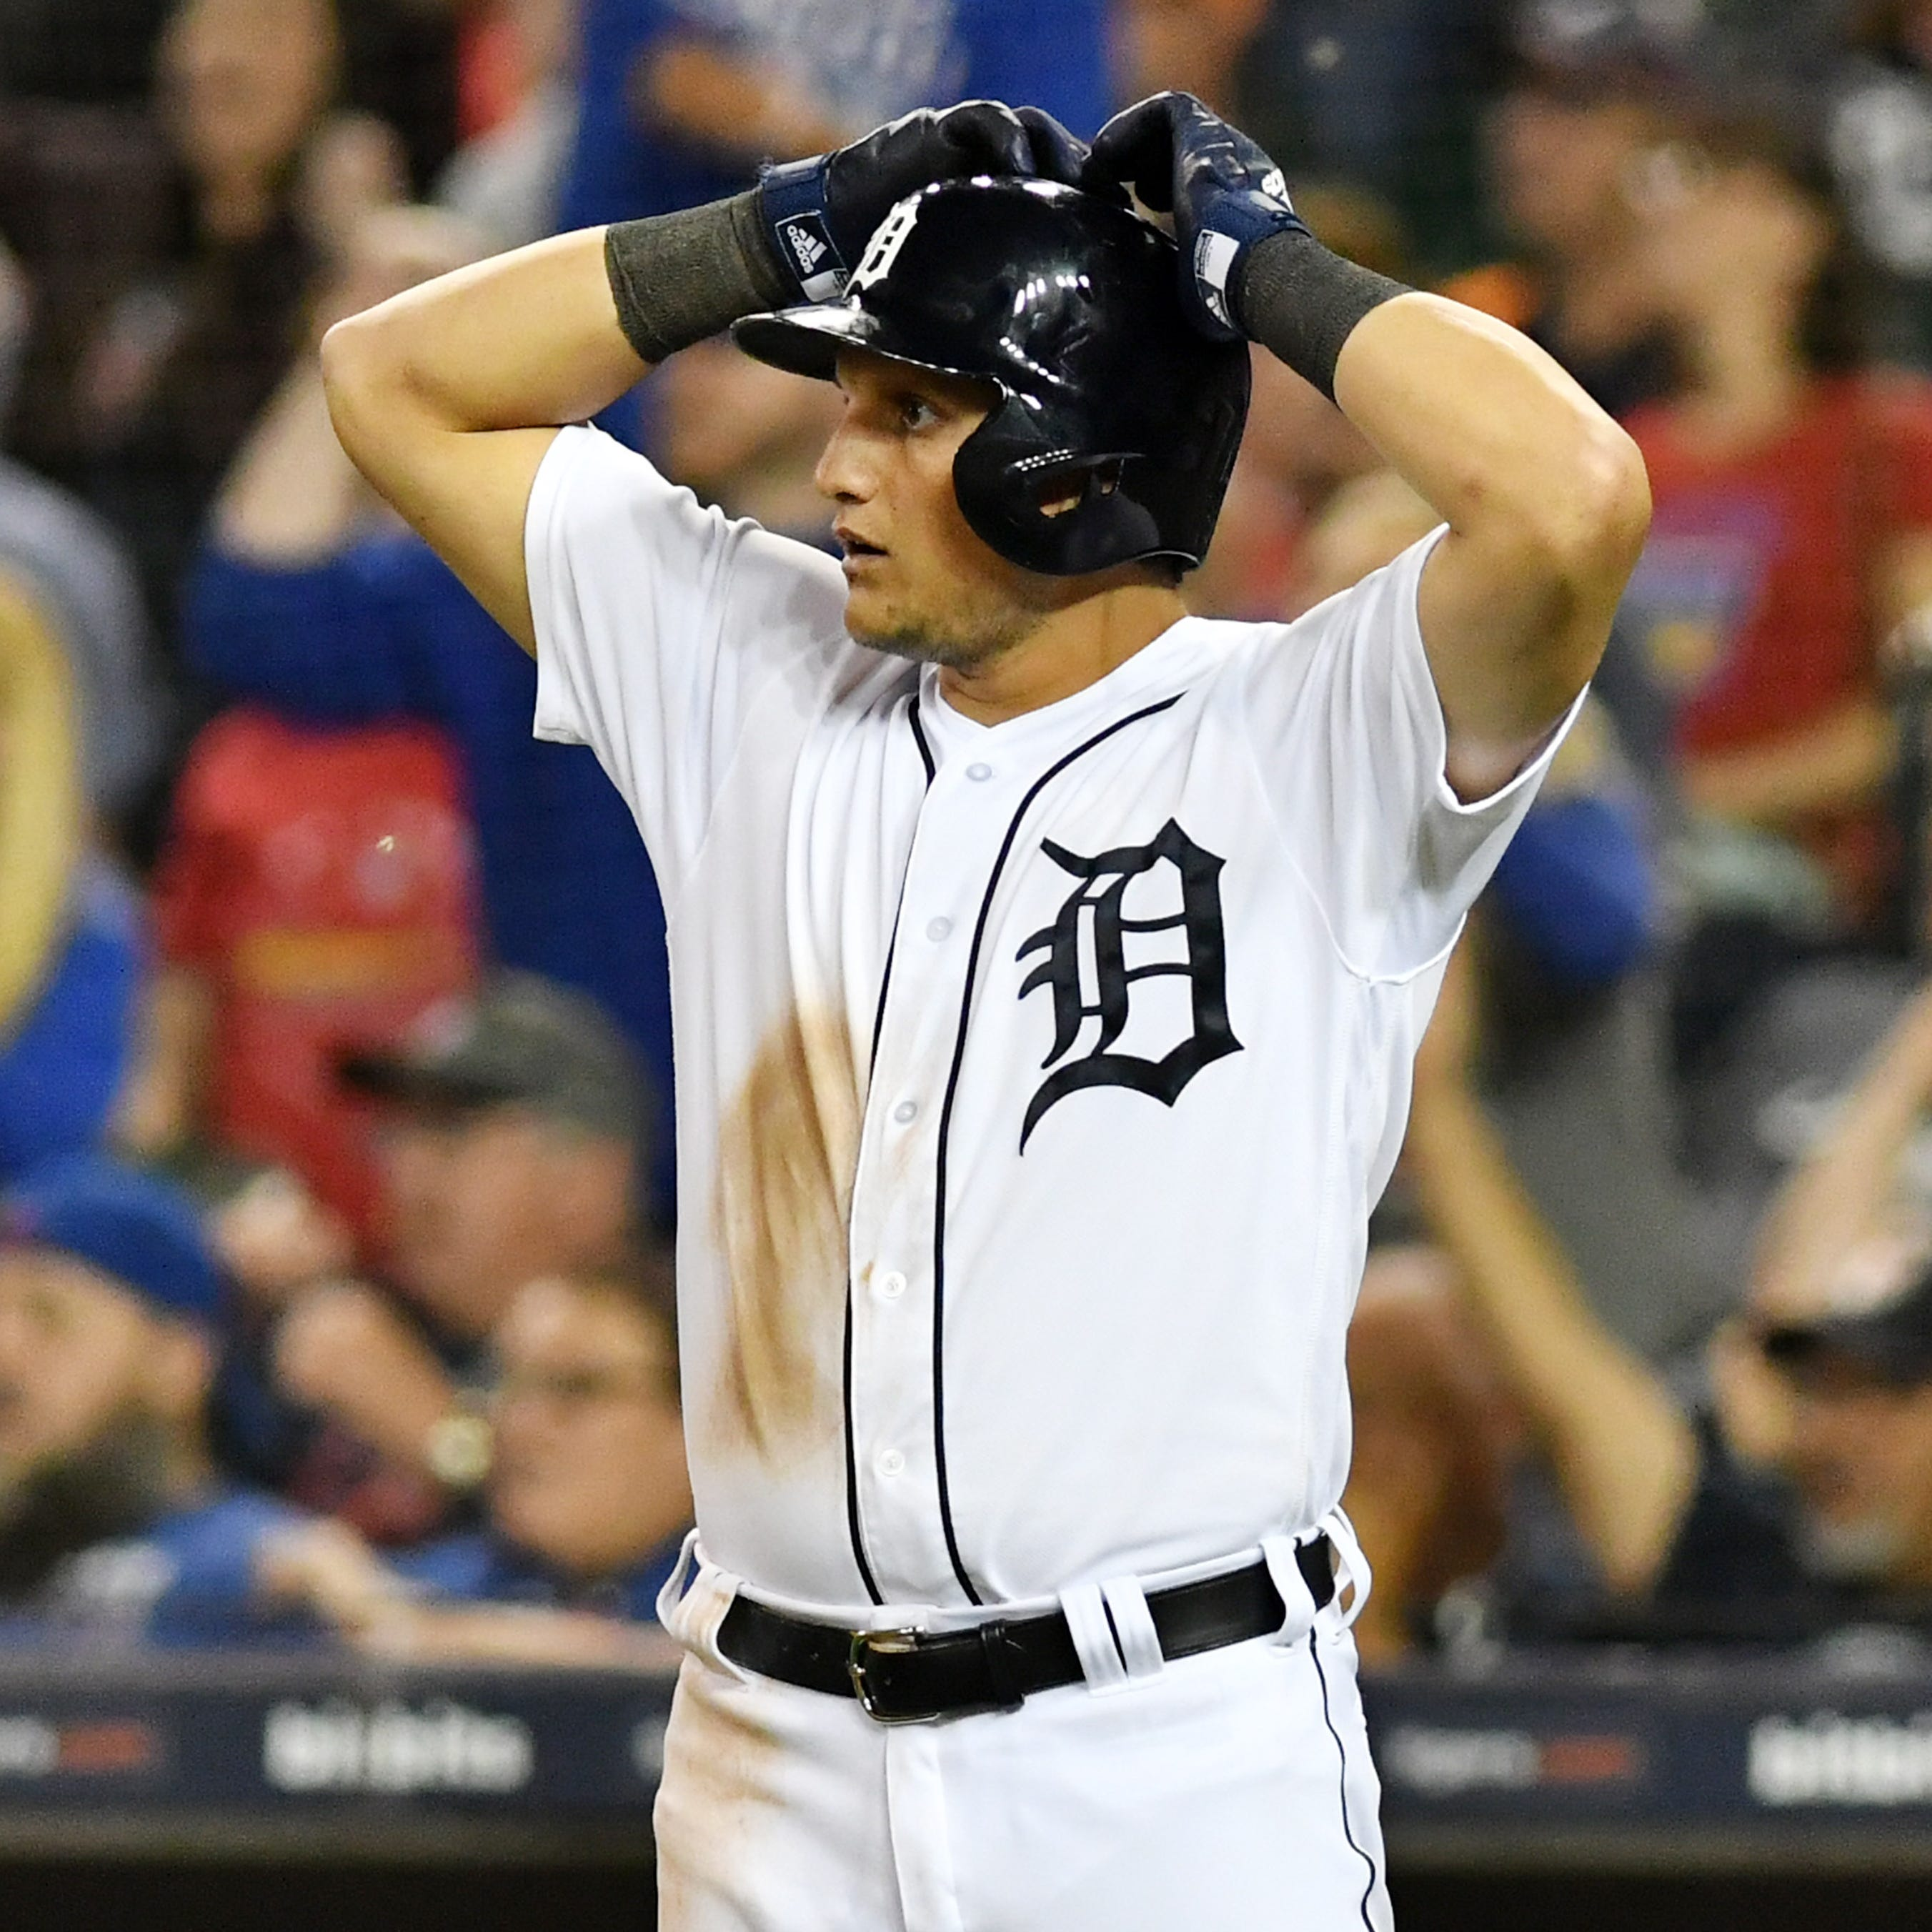 Tigers activate JaCoby Jones, designate struggling Mikie Mahtook for assignment